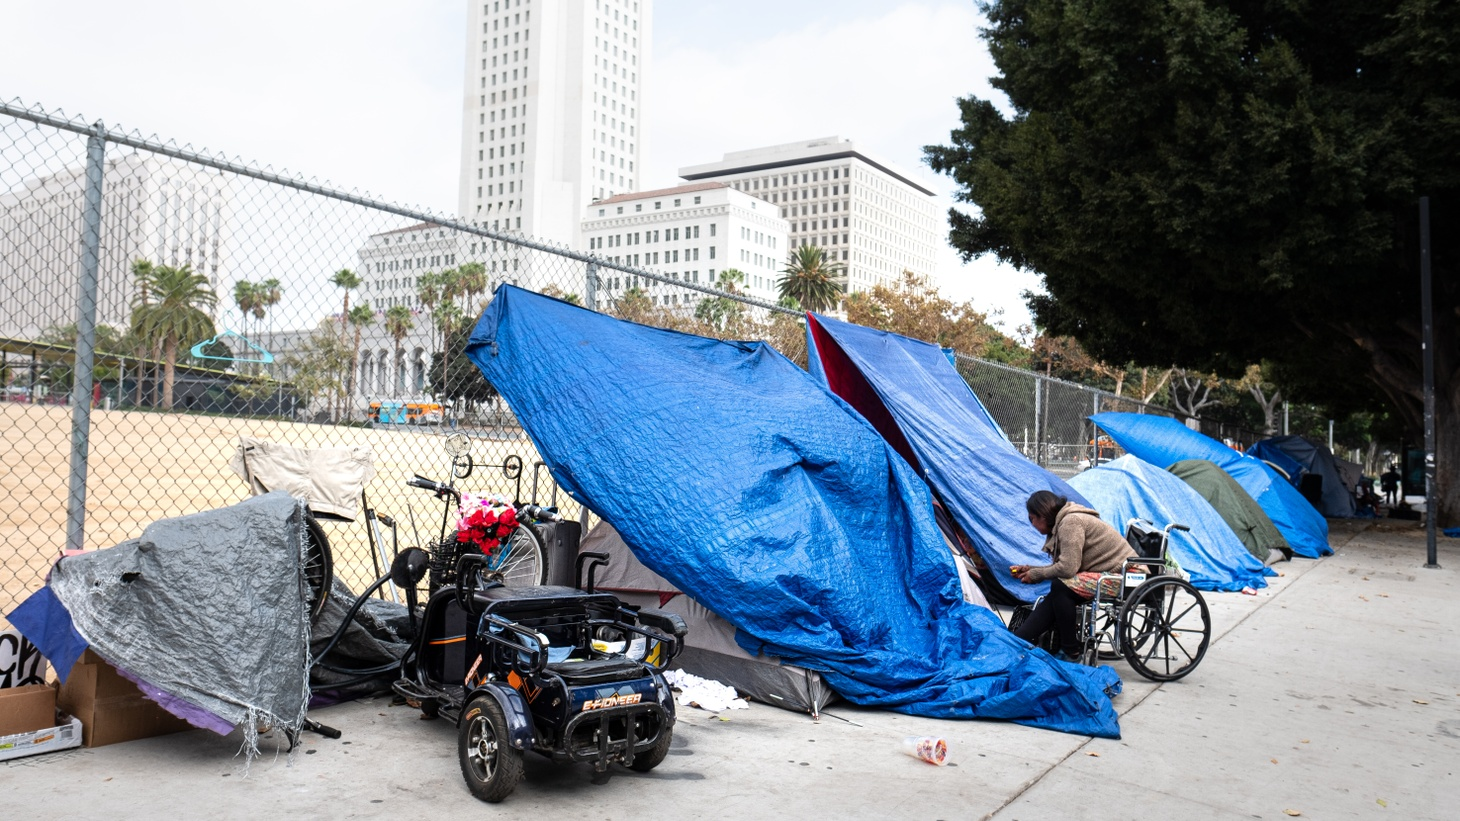 Homeless encampments near LA City Hall in downtown.